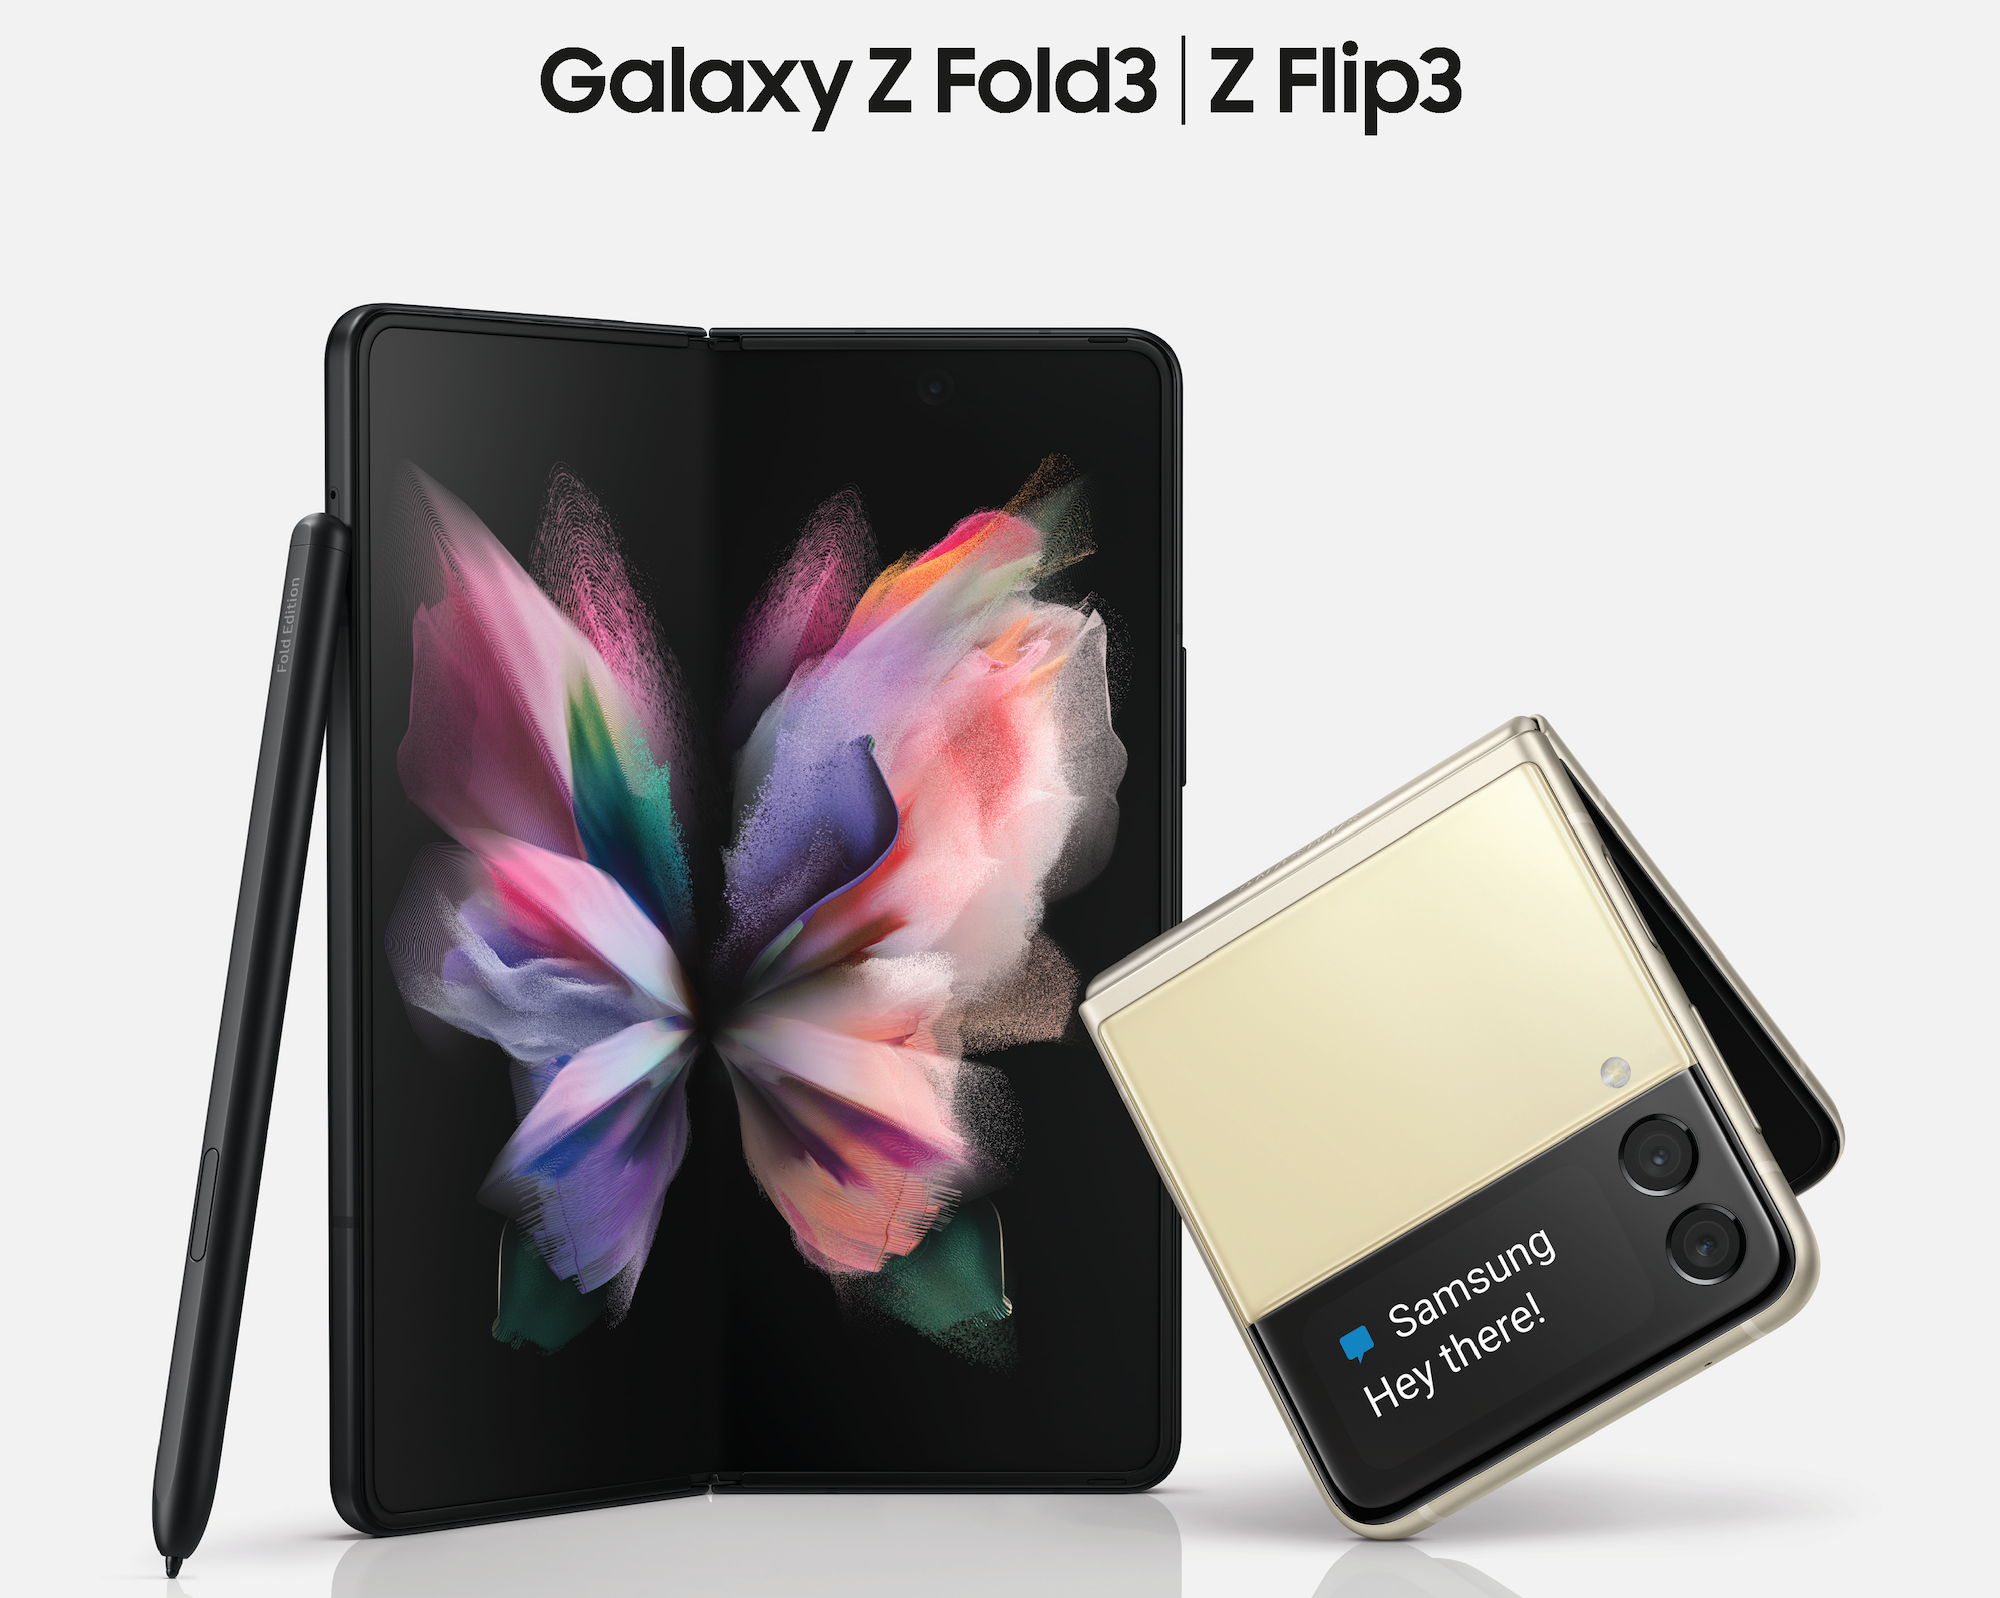 Flip or Fold? Introducing Samsung's newest smartphones